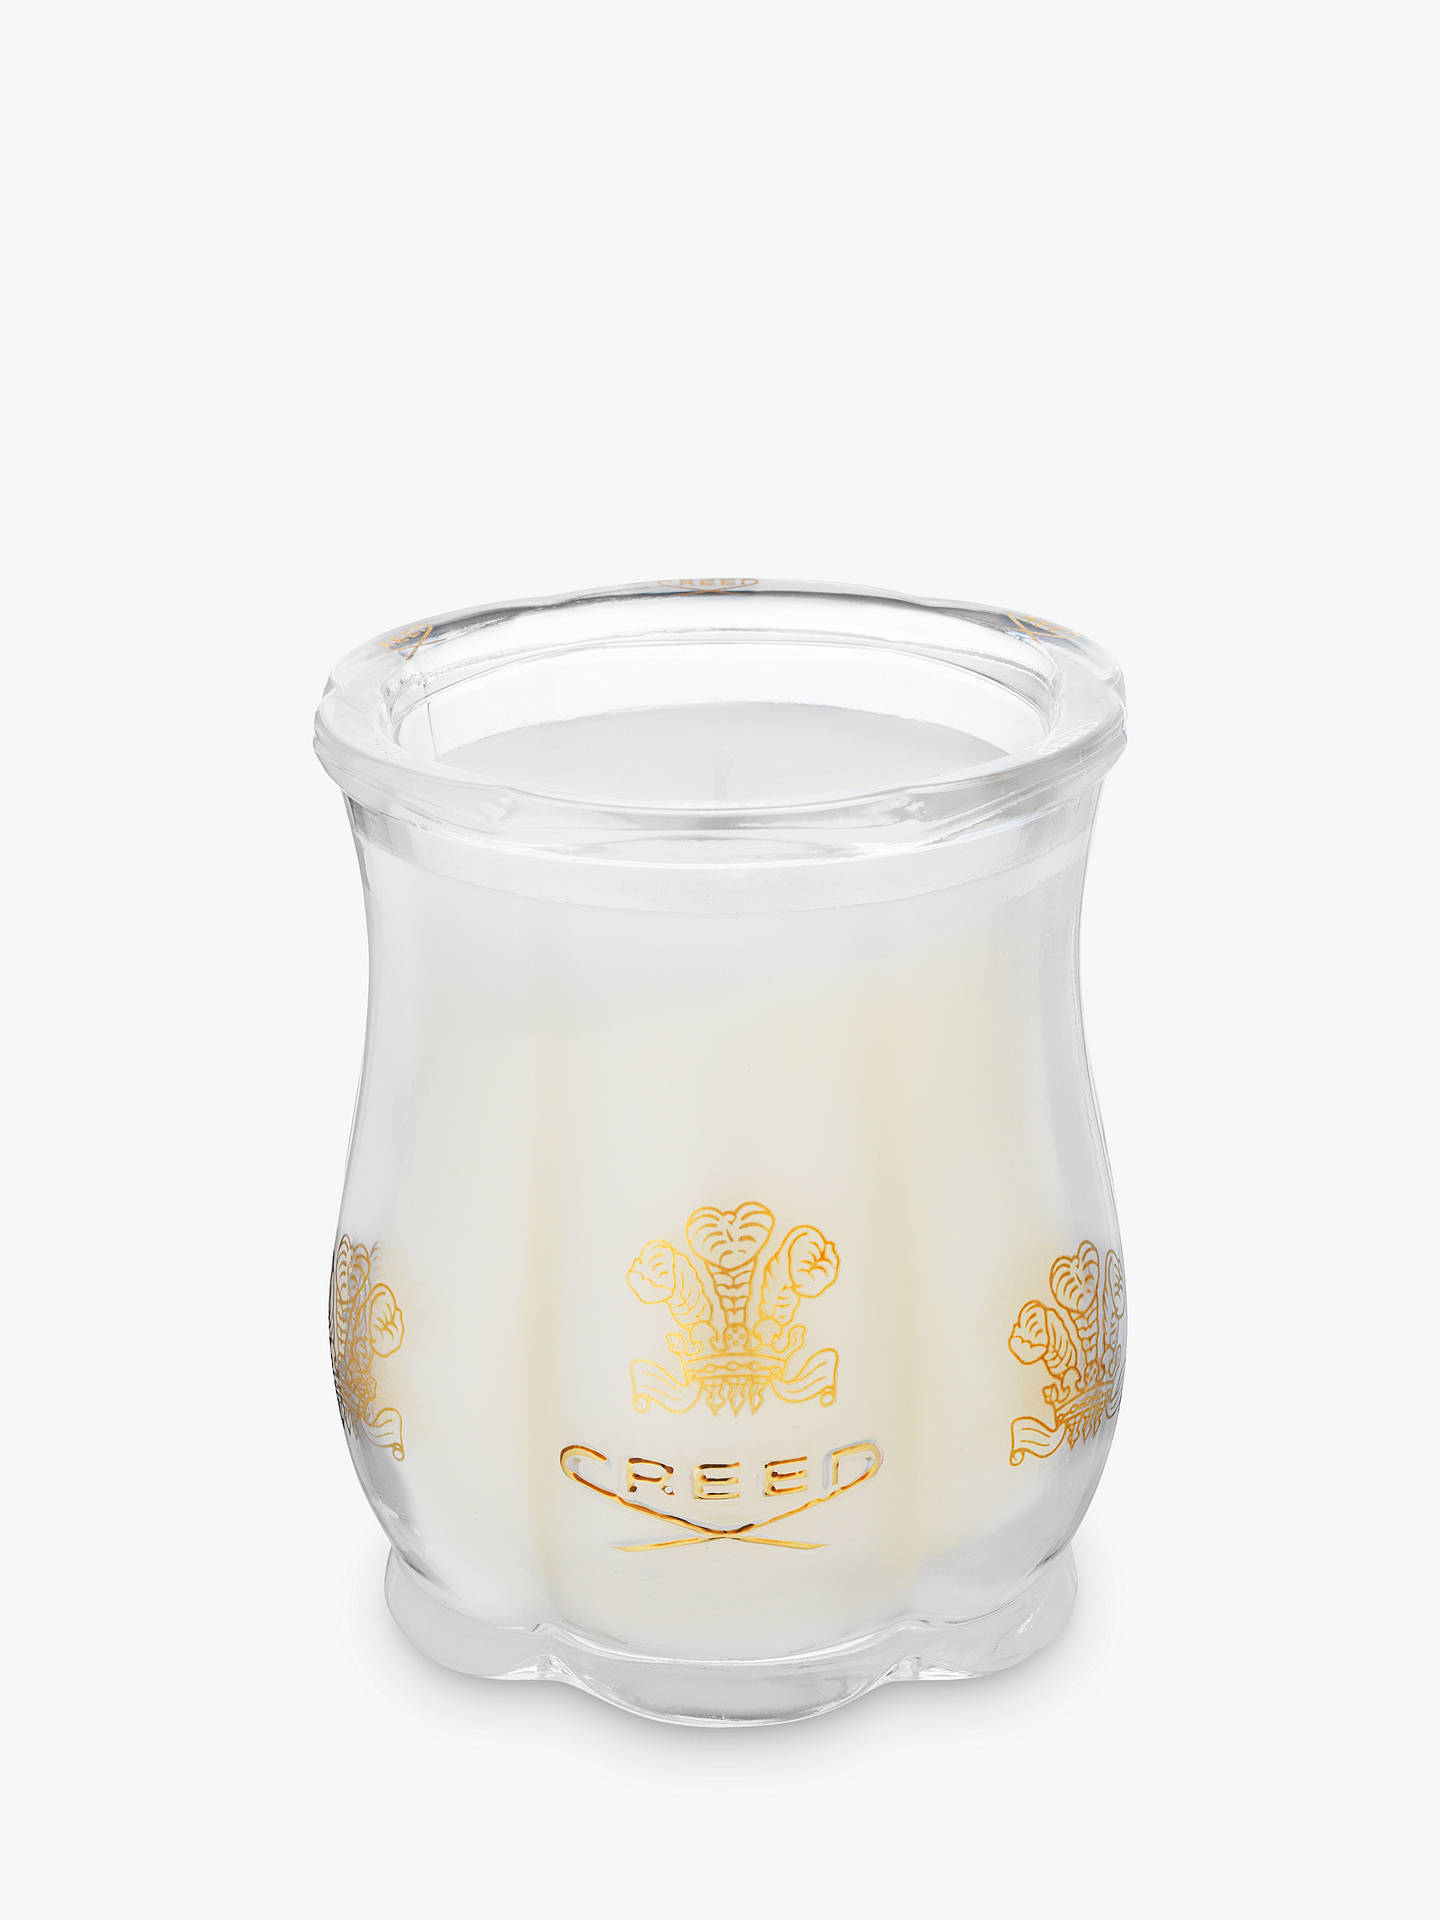 Creed Spring Flower Candle 200g At John Lewis Partners